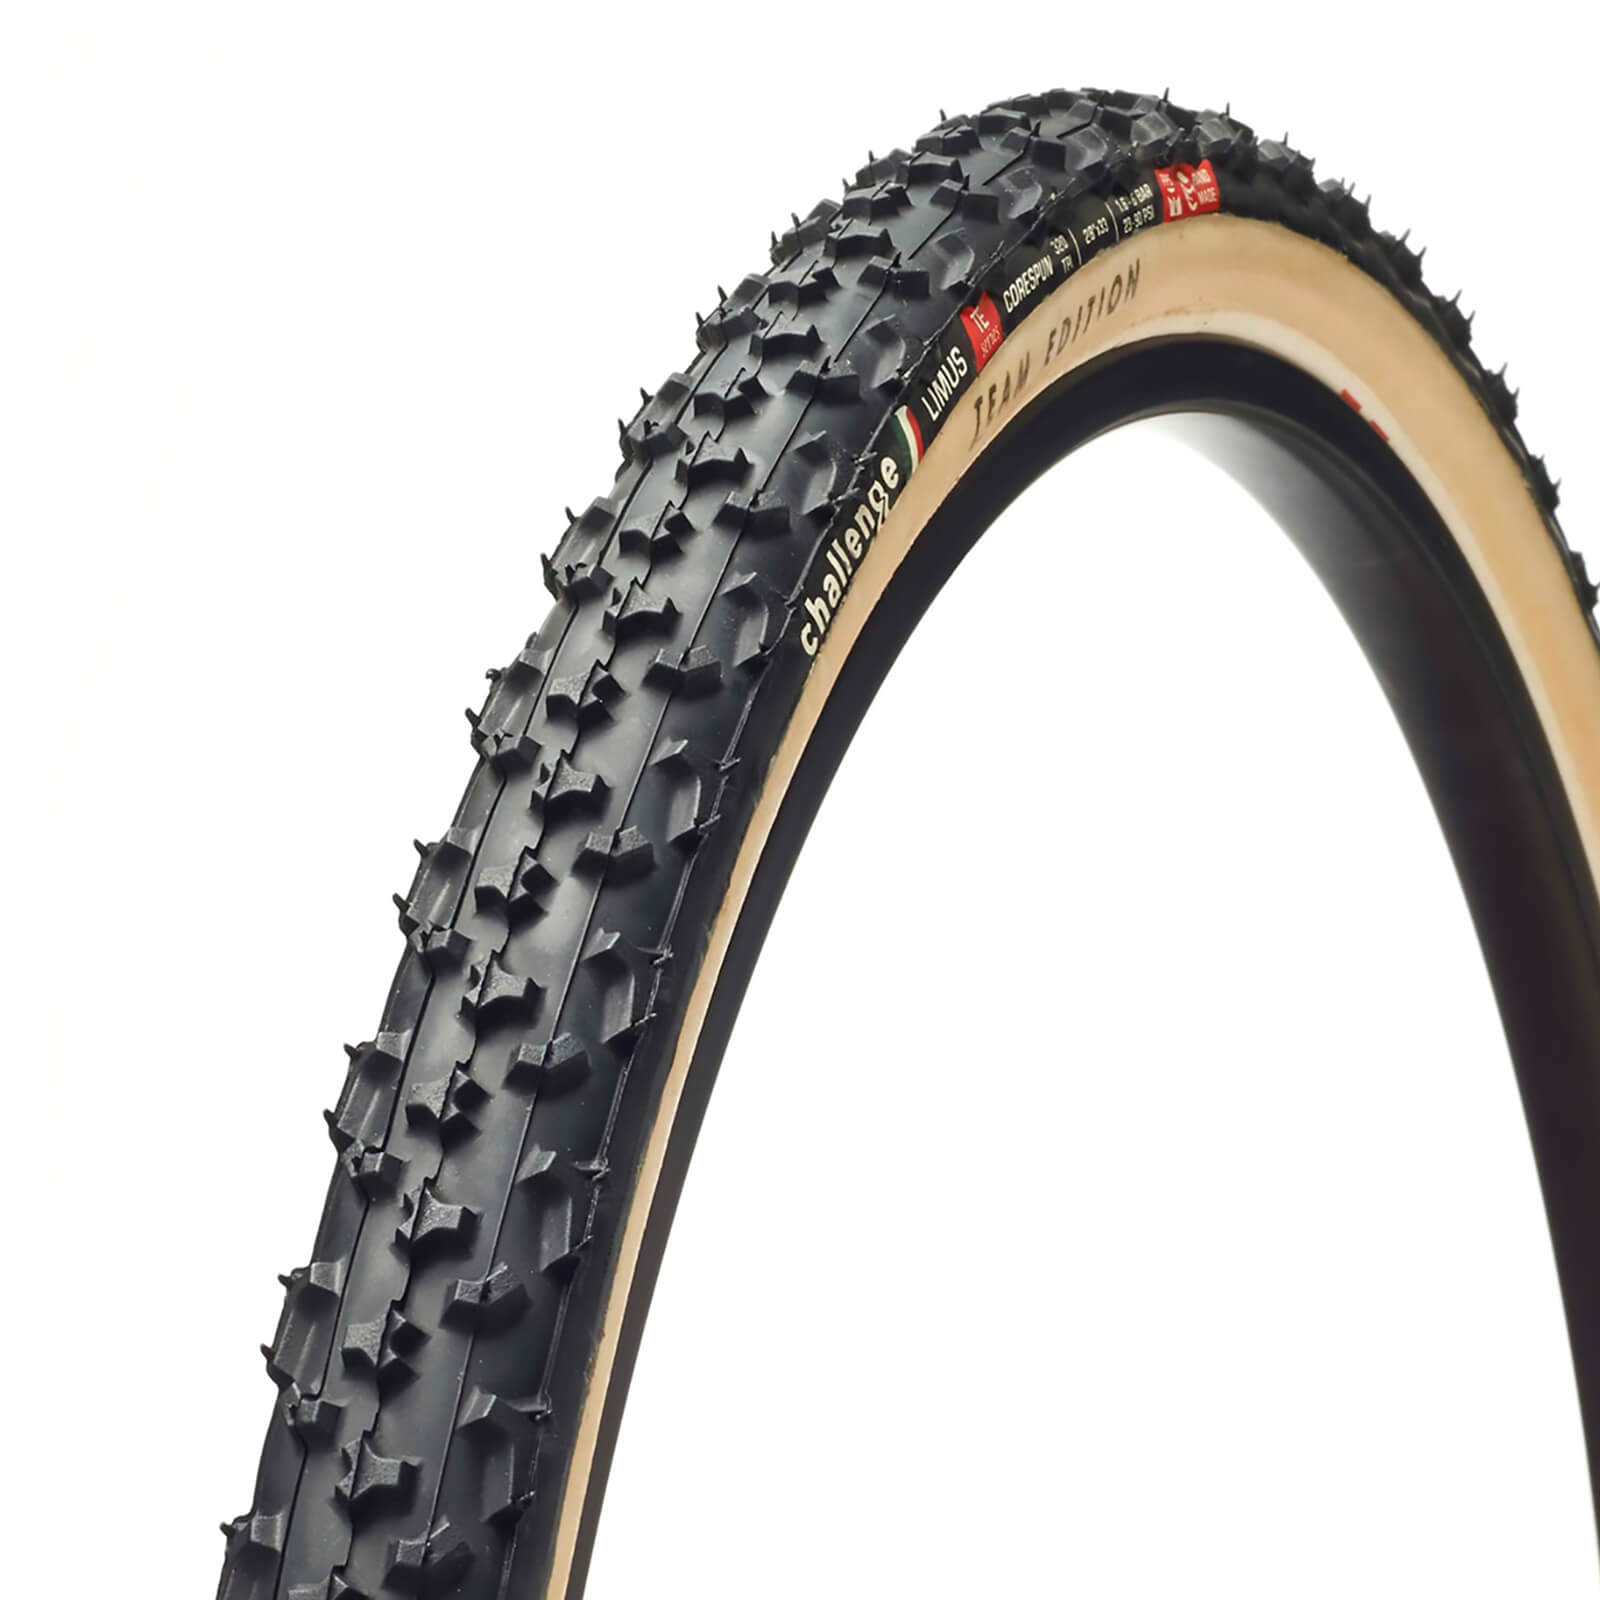 Challenge Baby Limus Clincher Cyclocross Tire - Black/Tan - 700c x 33mm